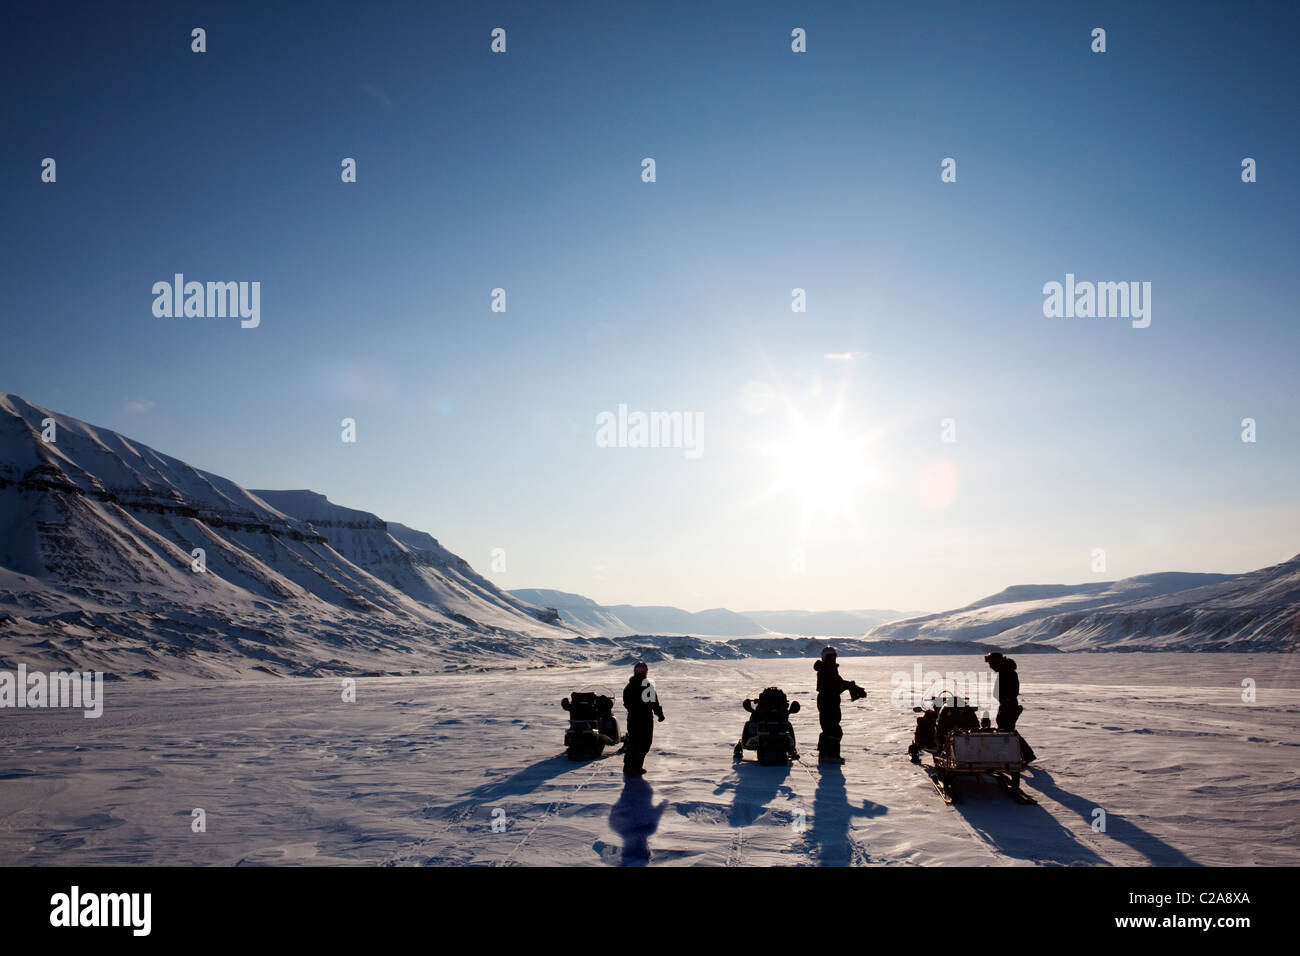 Three people on a winter snowmobile adventure in Svalbard, Norway - Stock Image